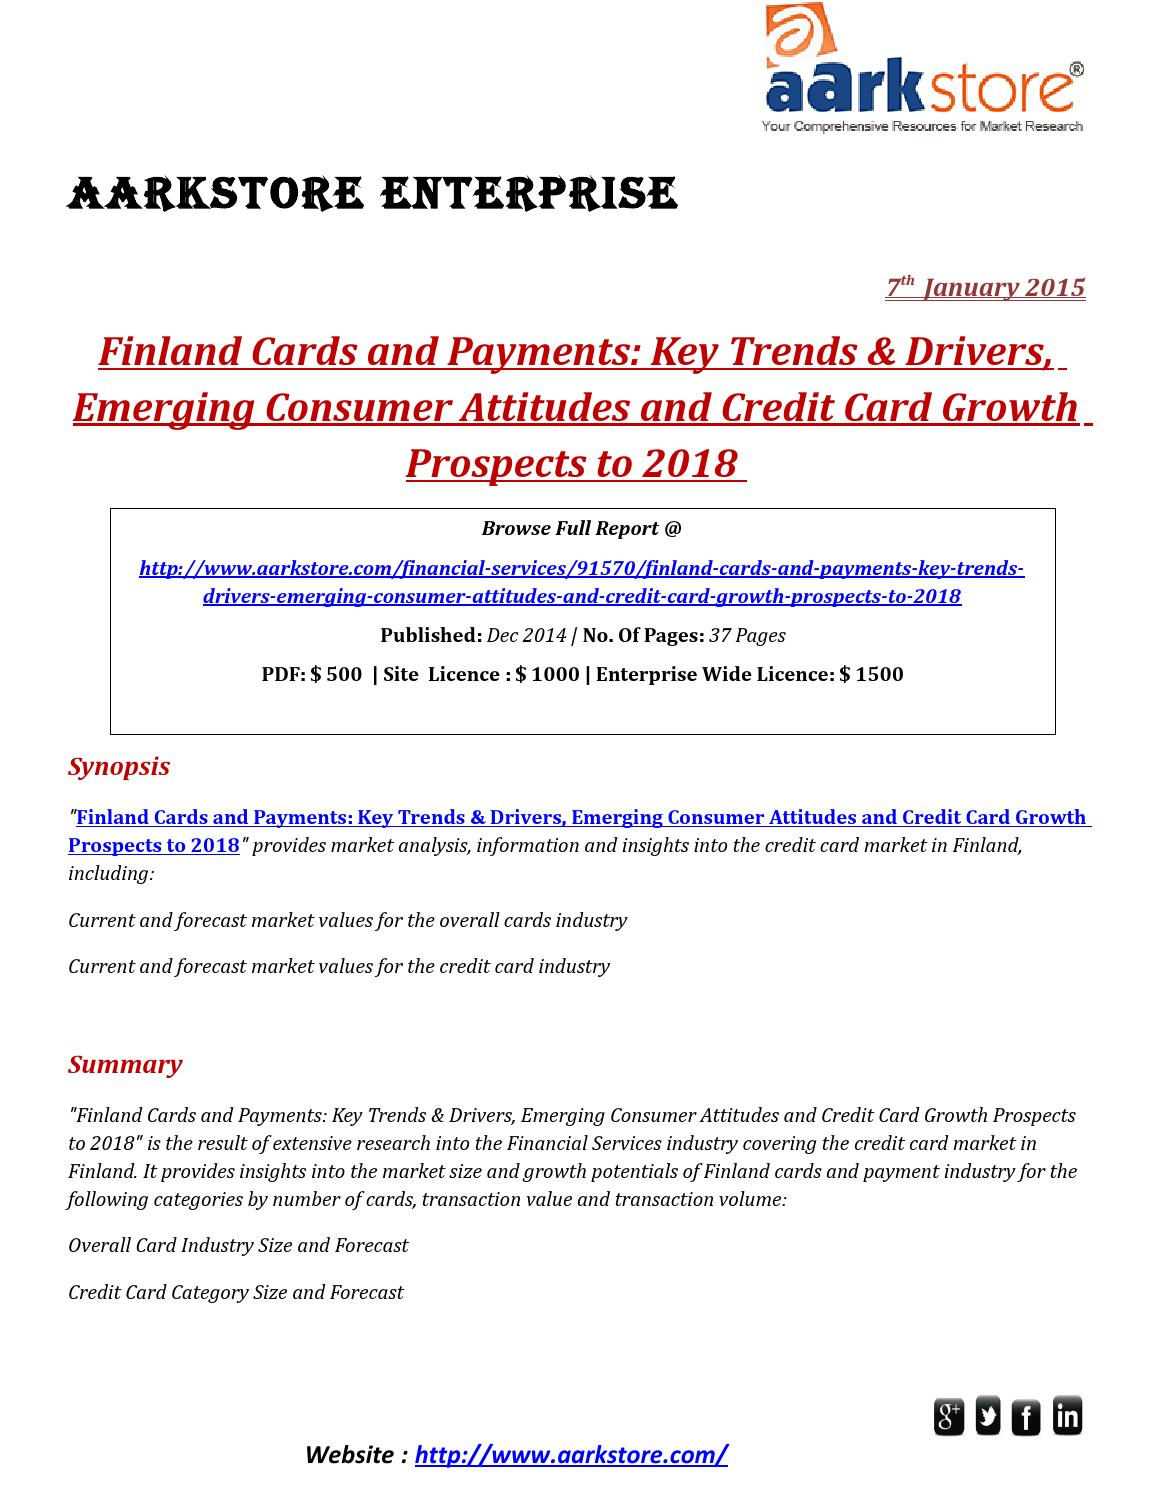 Aarkstore - Finland Cards and Payments by sangam Jain - issuu